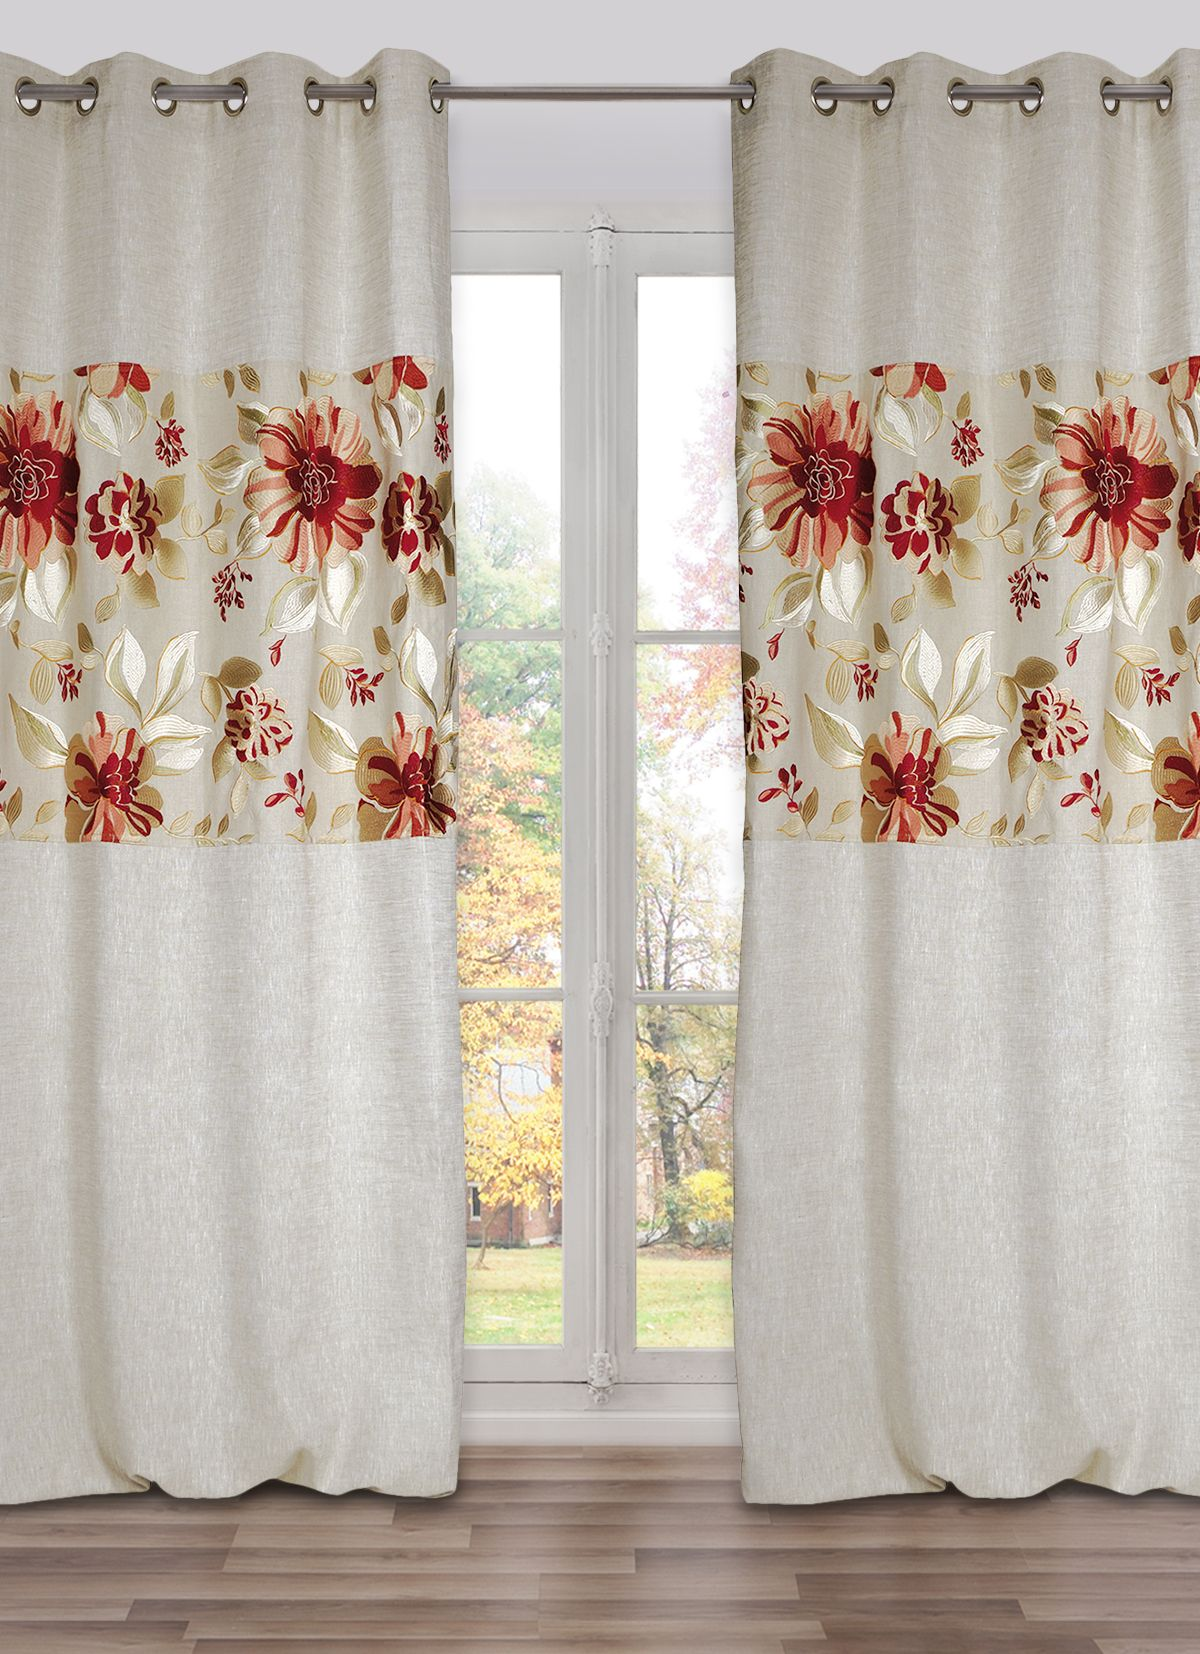 The Extra Long Curtain BUCOLIQUE In Red Has A Large Embroidery Flowers  Stripe Across The Panel   The Drapery Comes With Grommets   Made In France